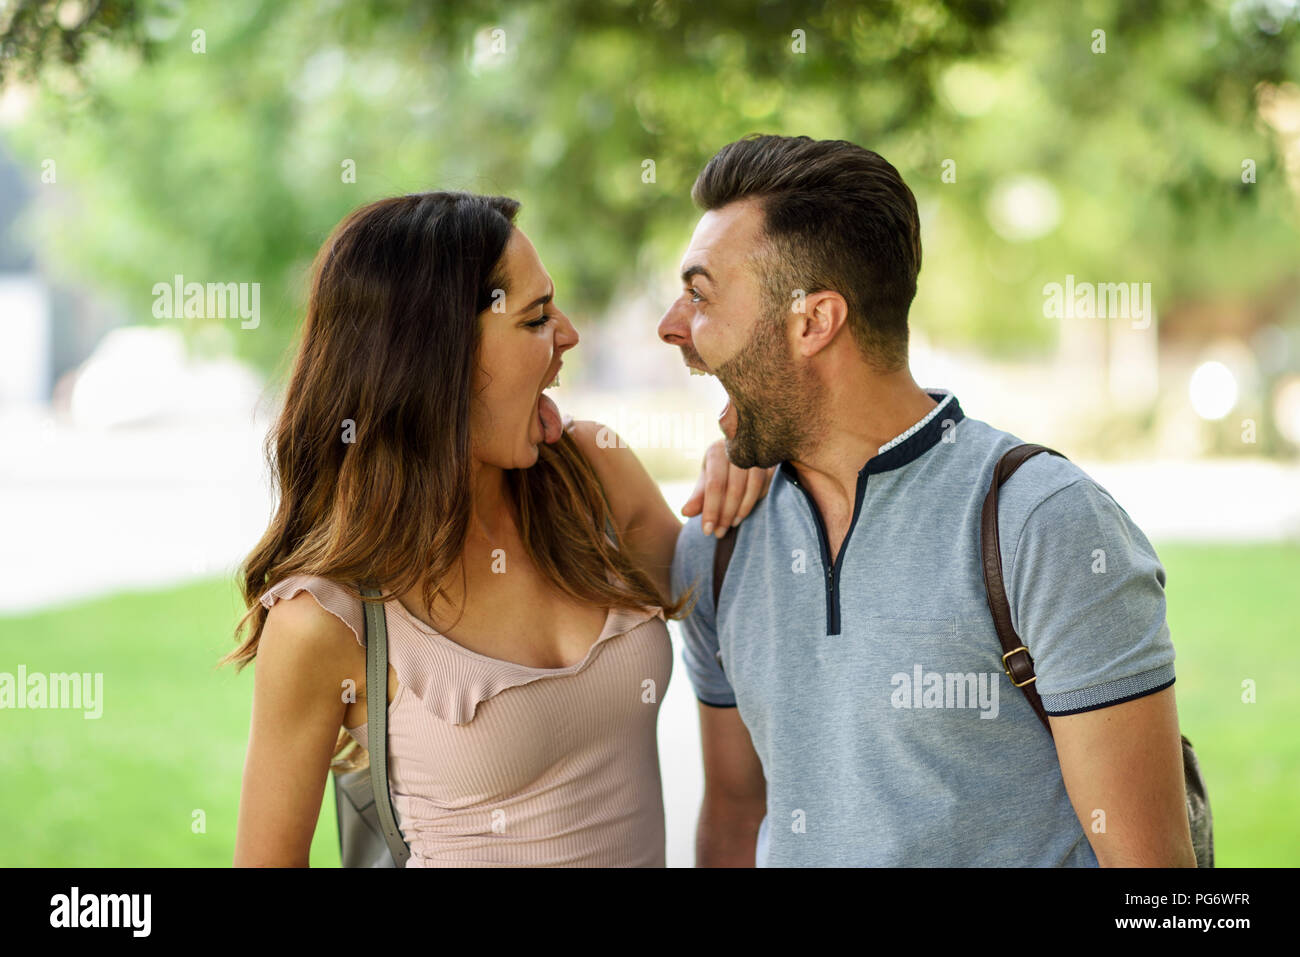 Couple looking at each other pulling funny faces - Stock Image